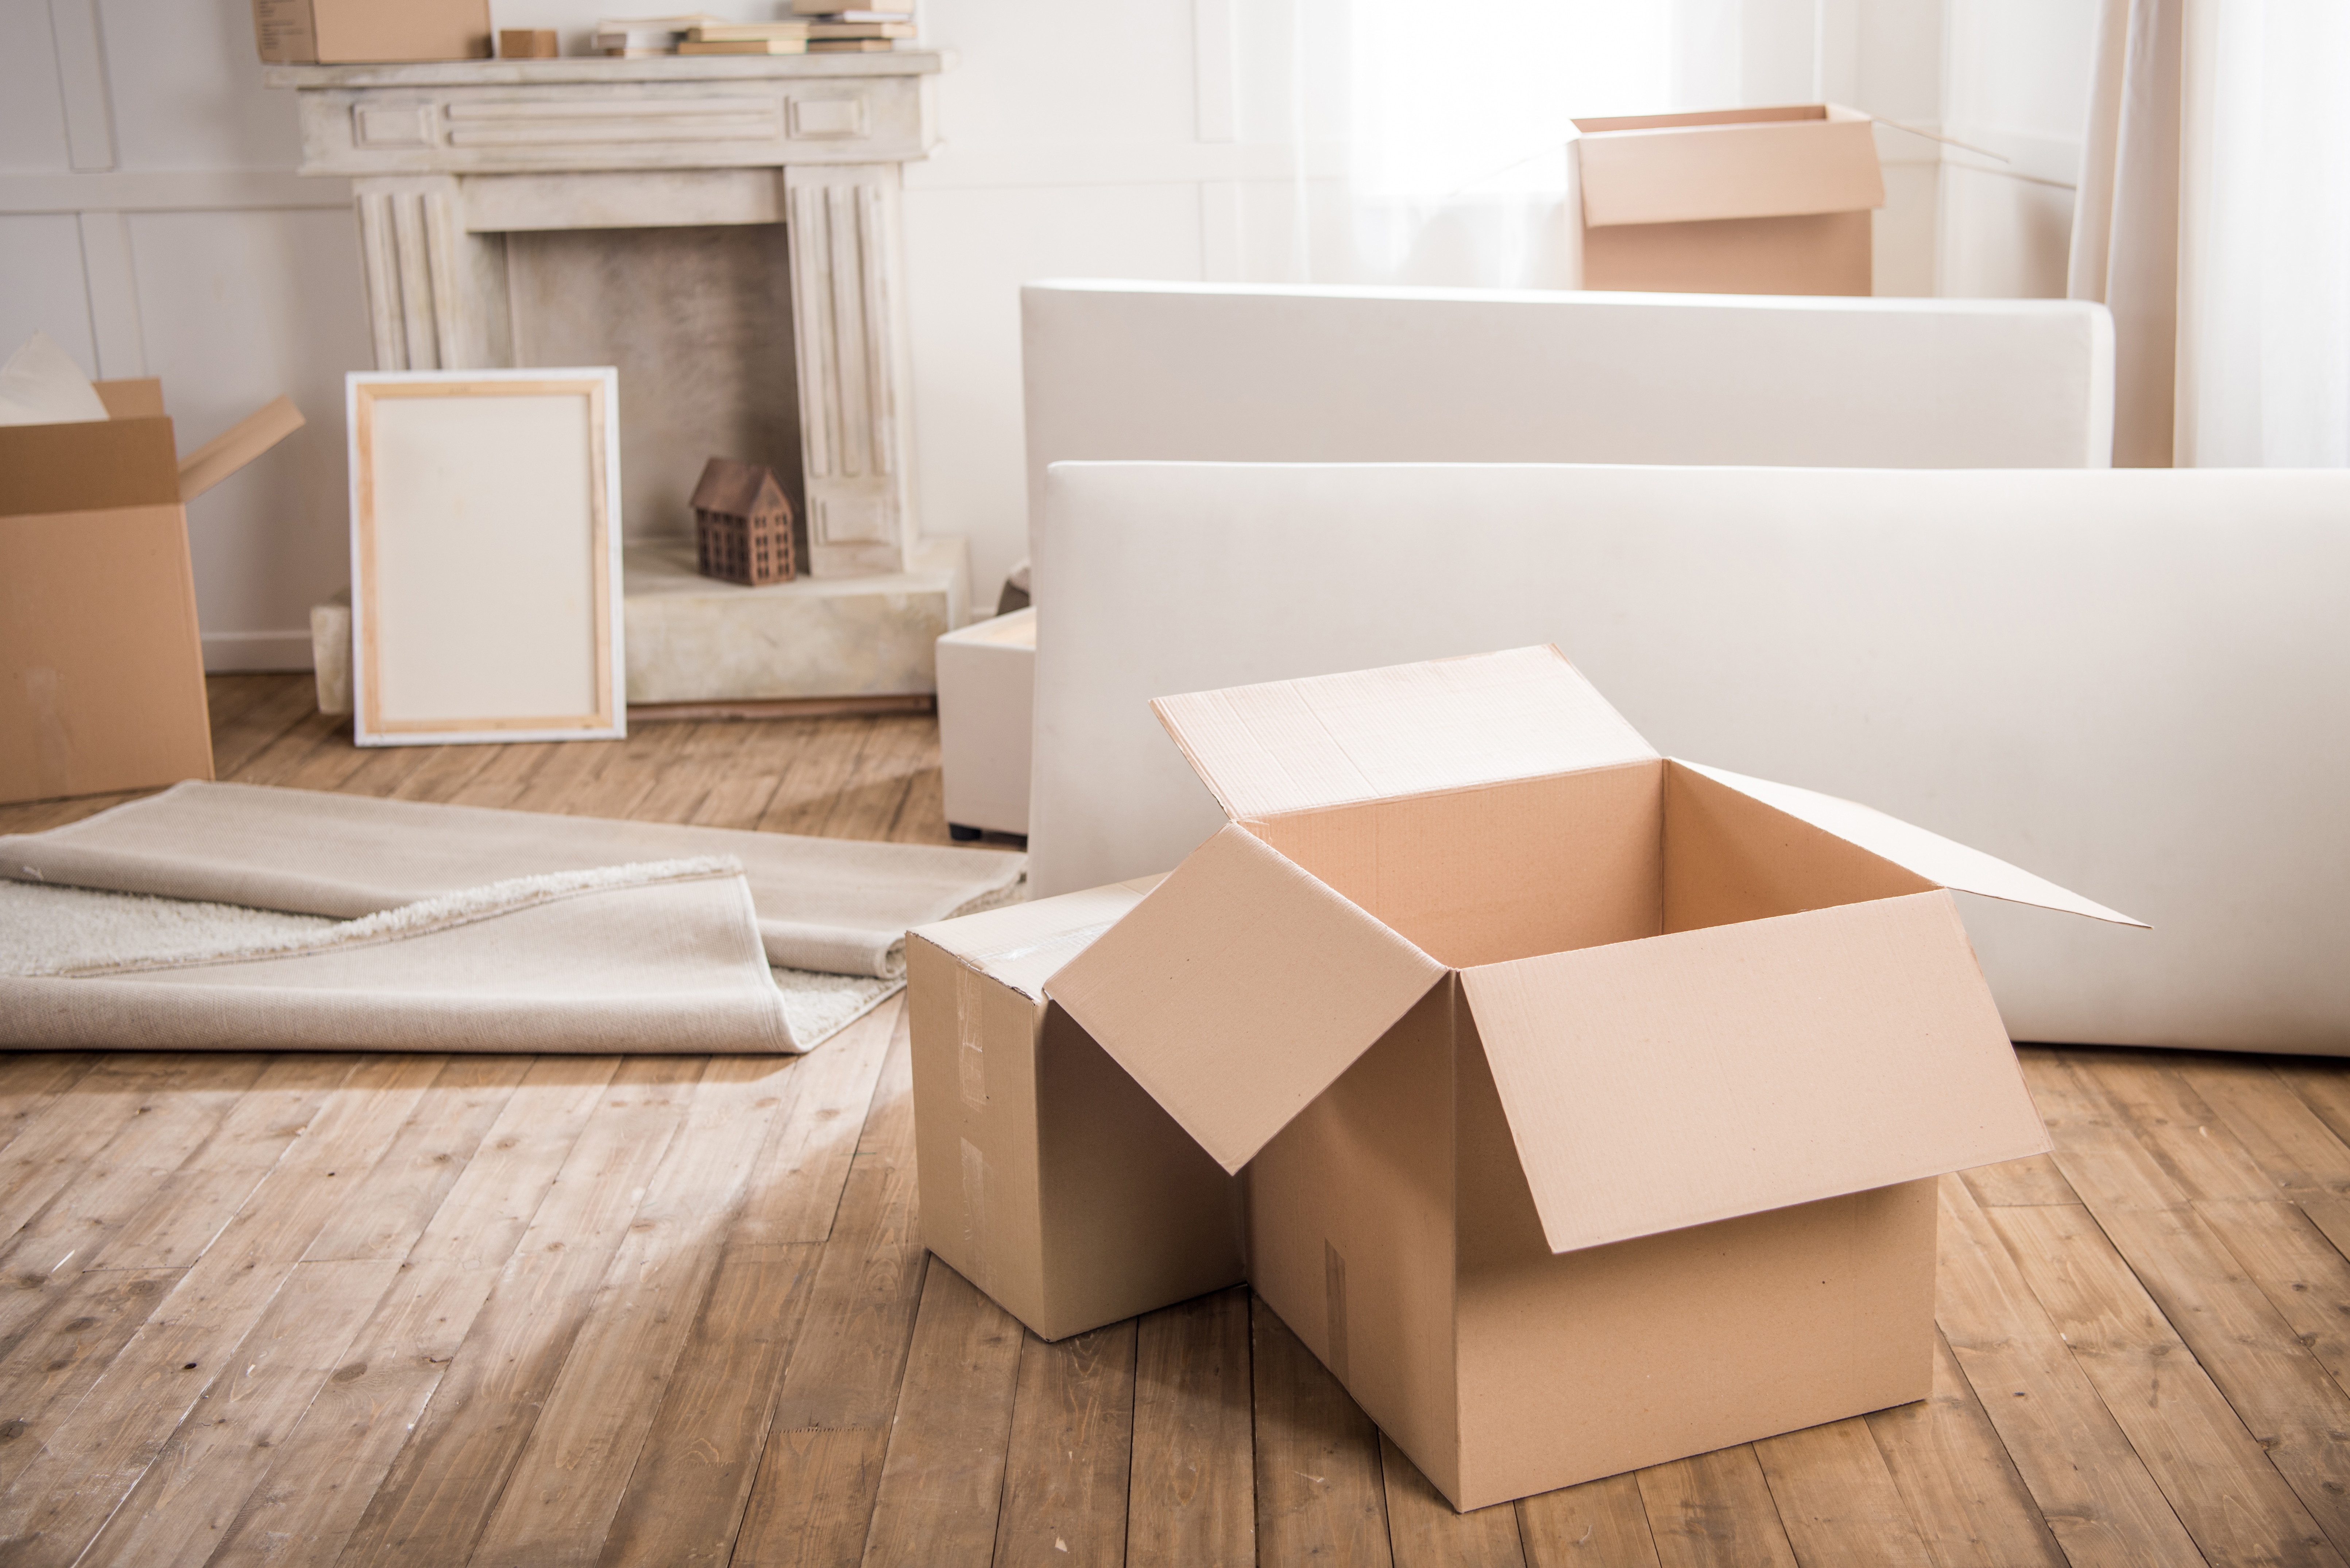 cardboard boxes in a half empty room with cloth on a wooden floor and packing materials